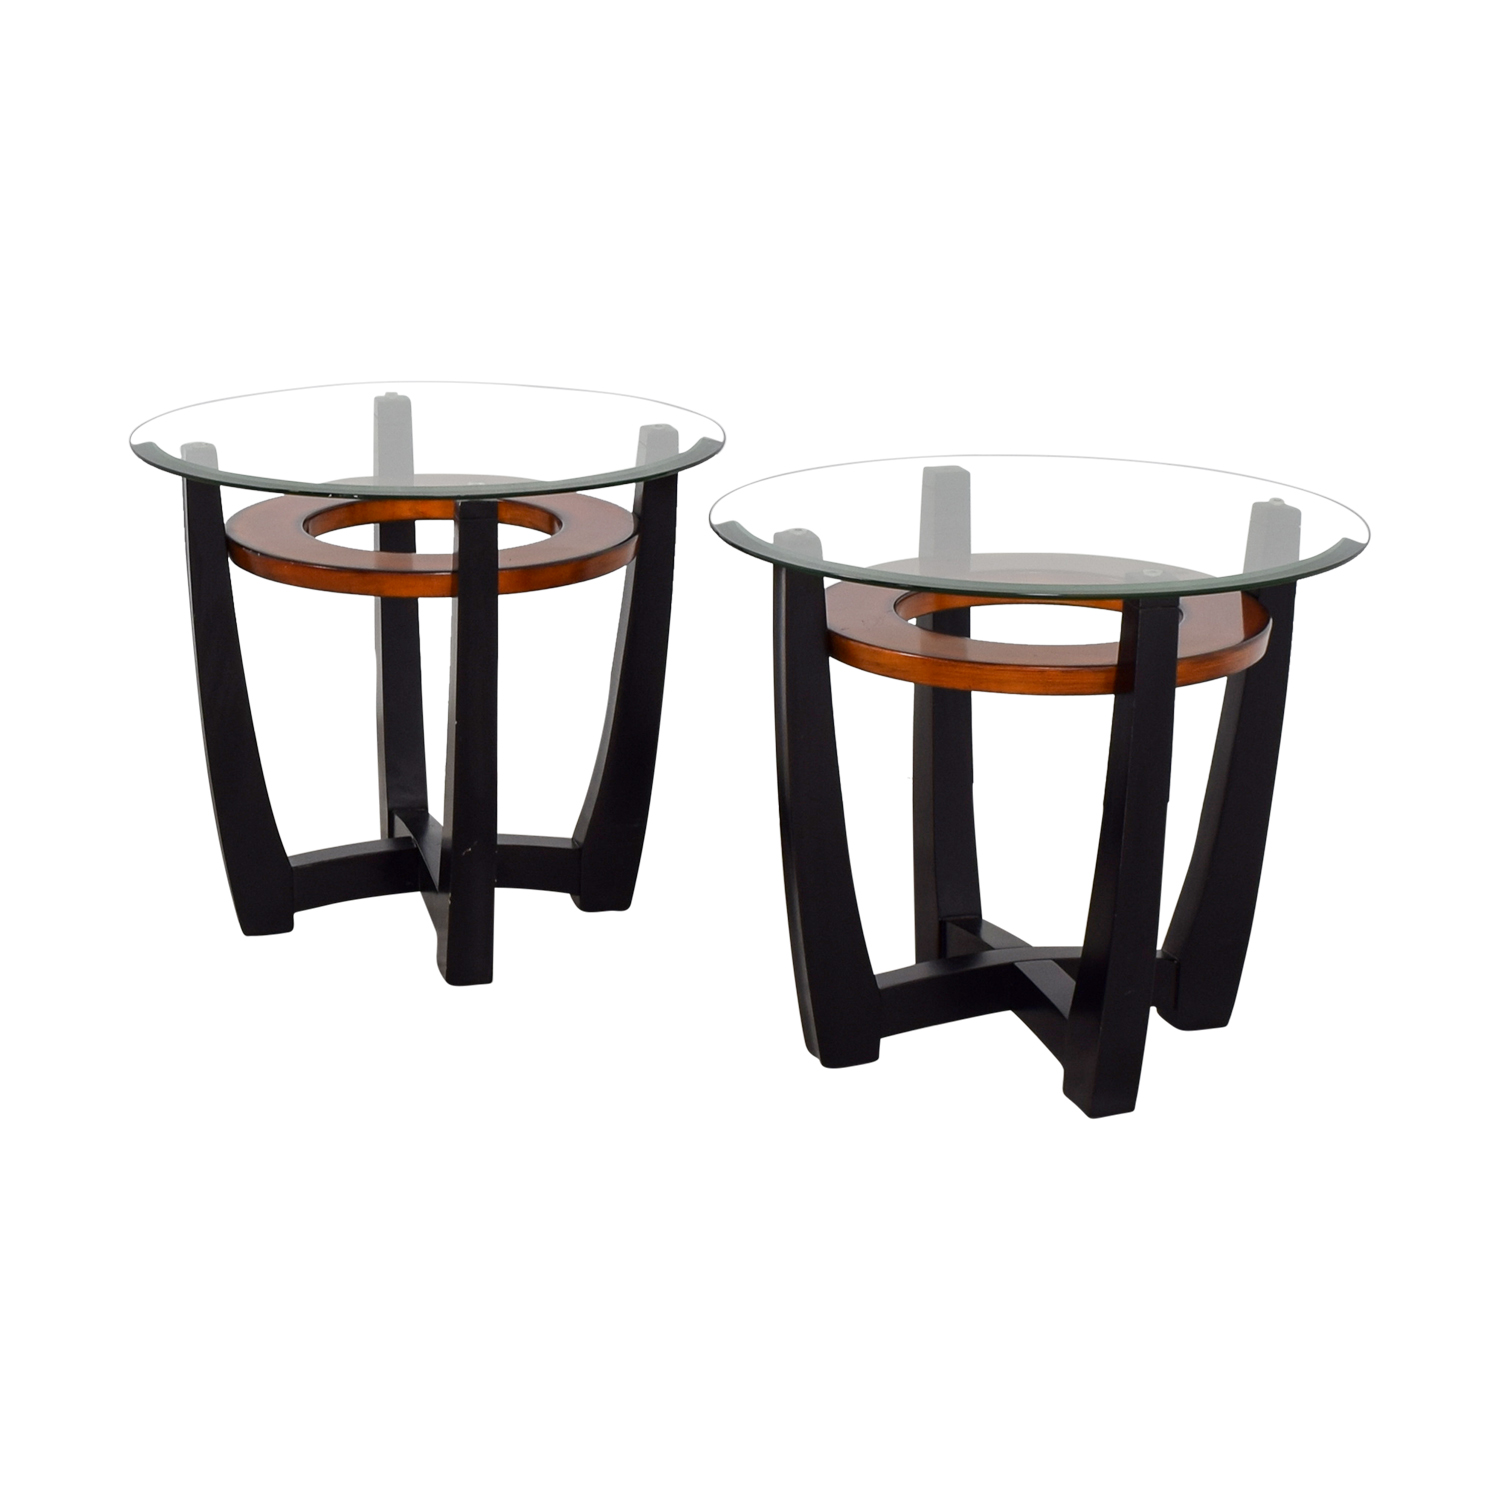 Elation Round Glass and Wood End Tables Elation